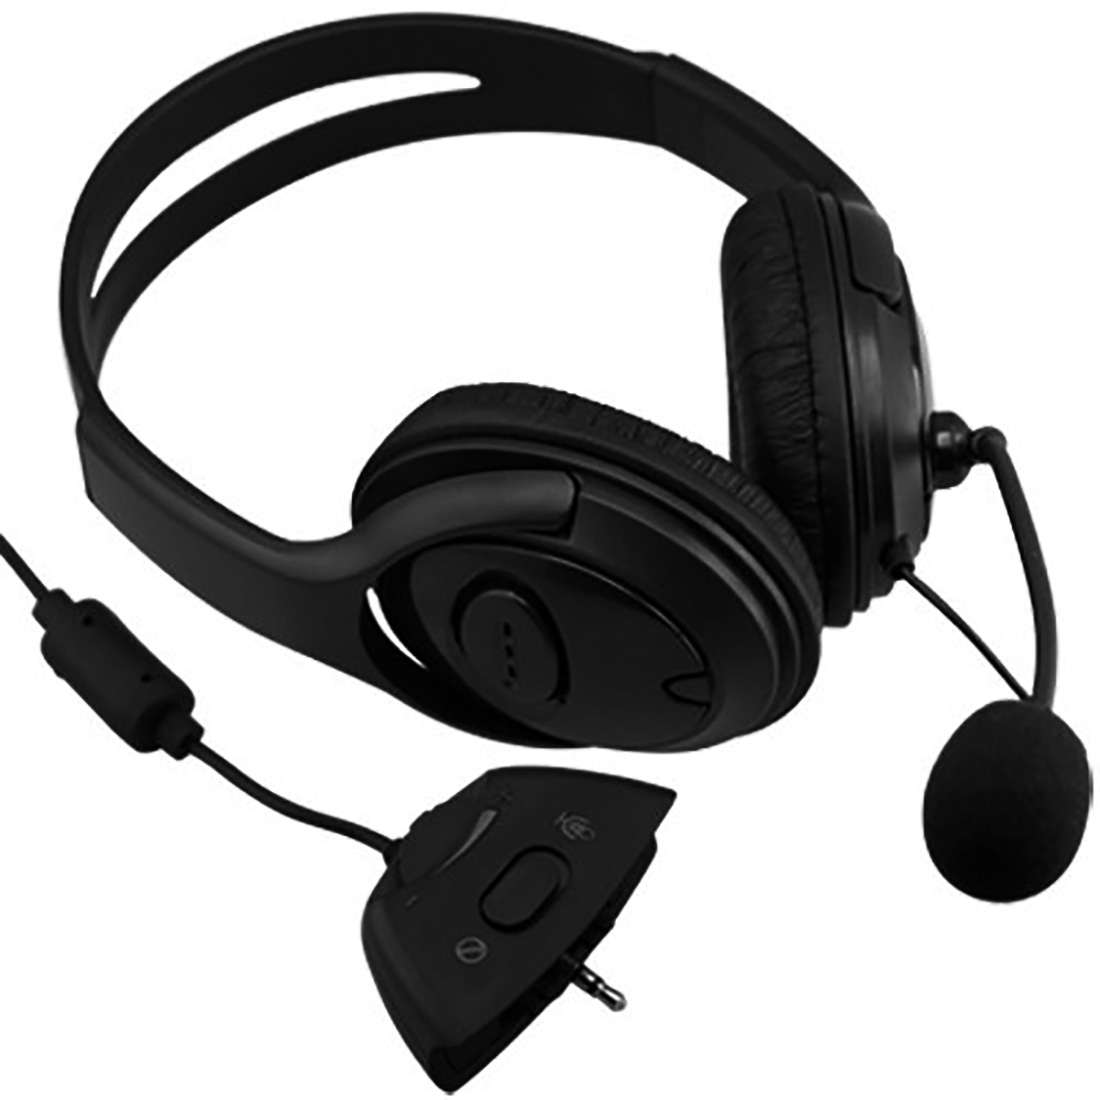 Marsnaska protable xbox360 Wired Gaming Chat dual Headset Headphone Microphone for xbox 360 computer Black 2 5mm plug headset w microphone for xbox360 xbox 360 slim black